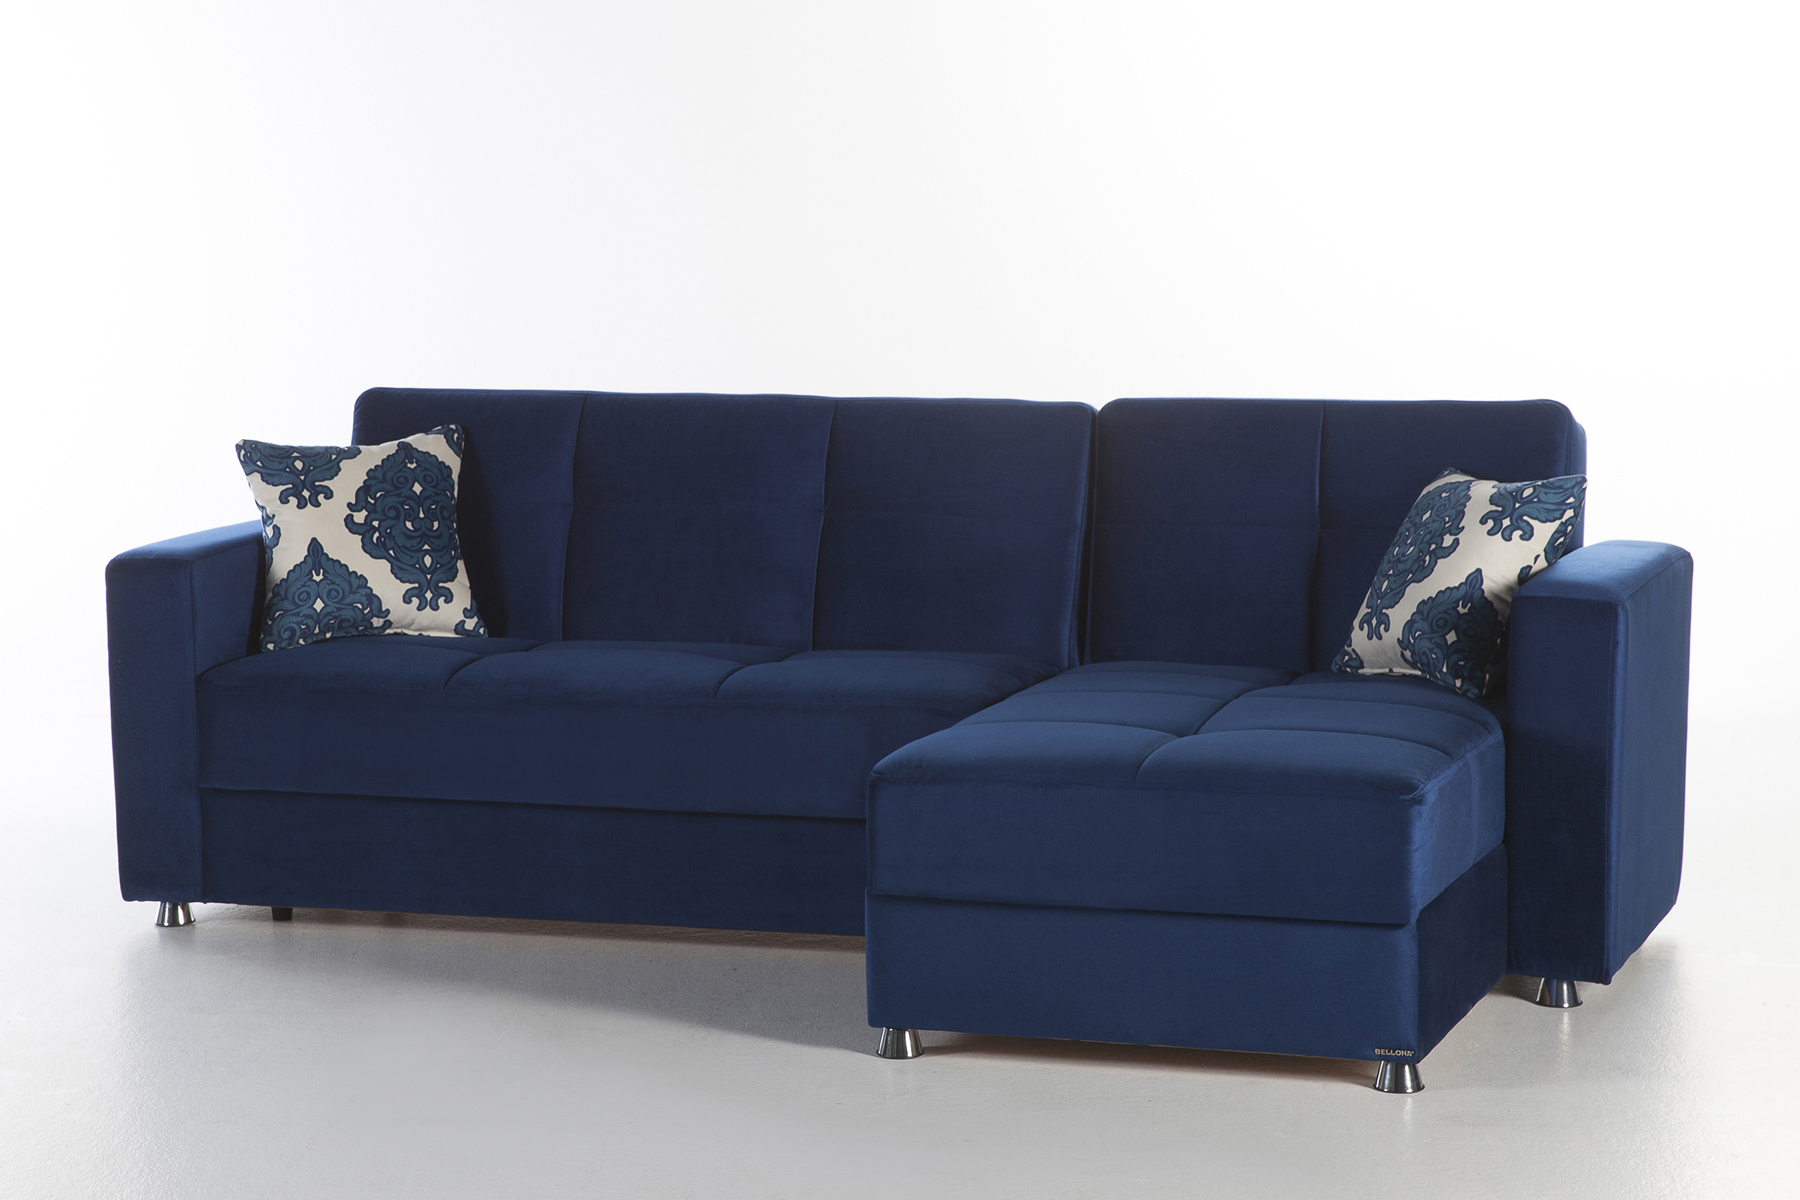 Elegant Roma Navy Sectional Sofa by Sunset